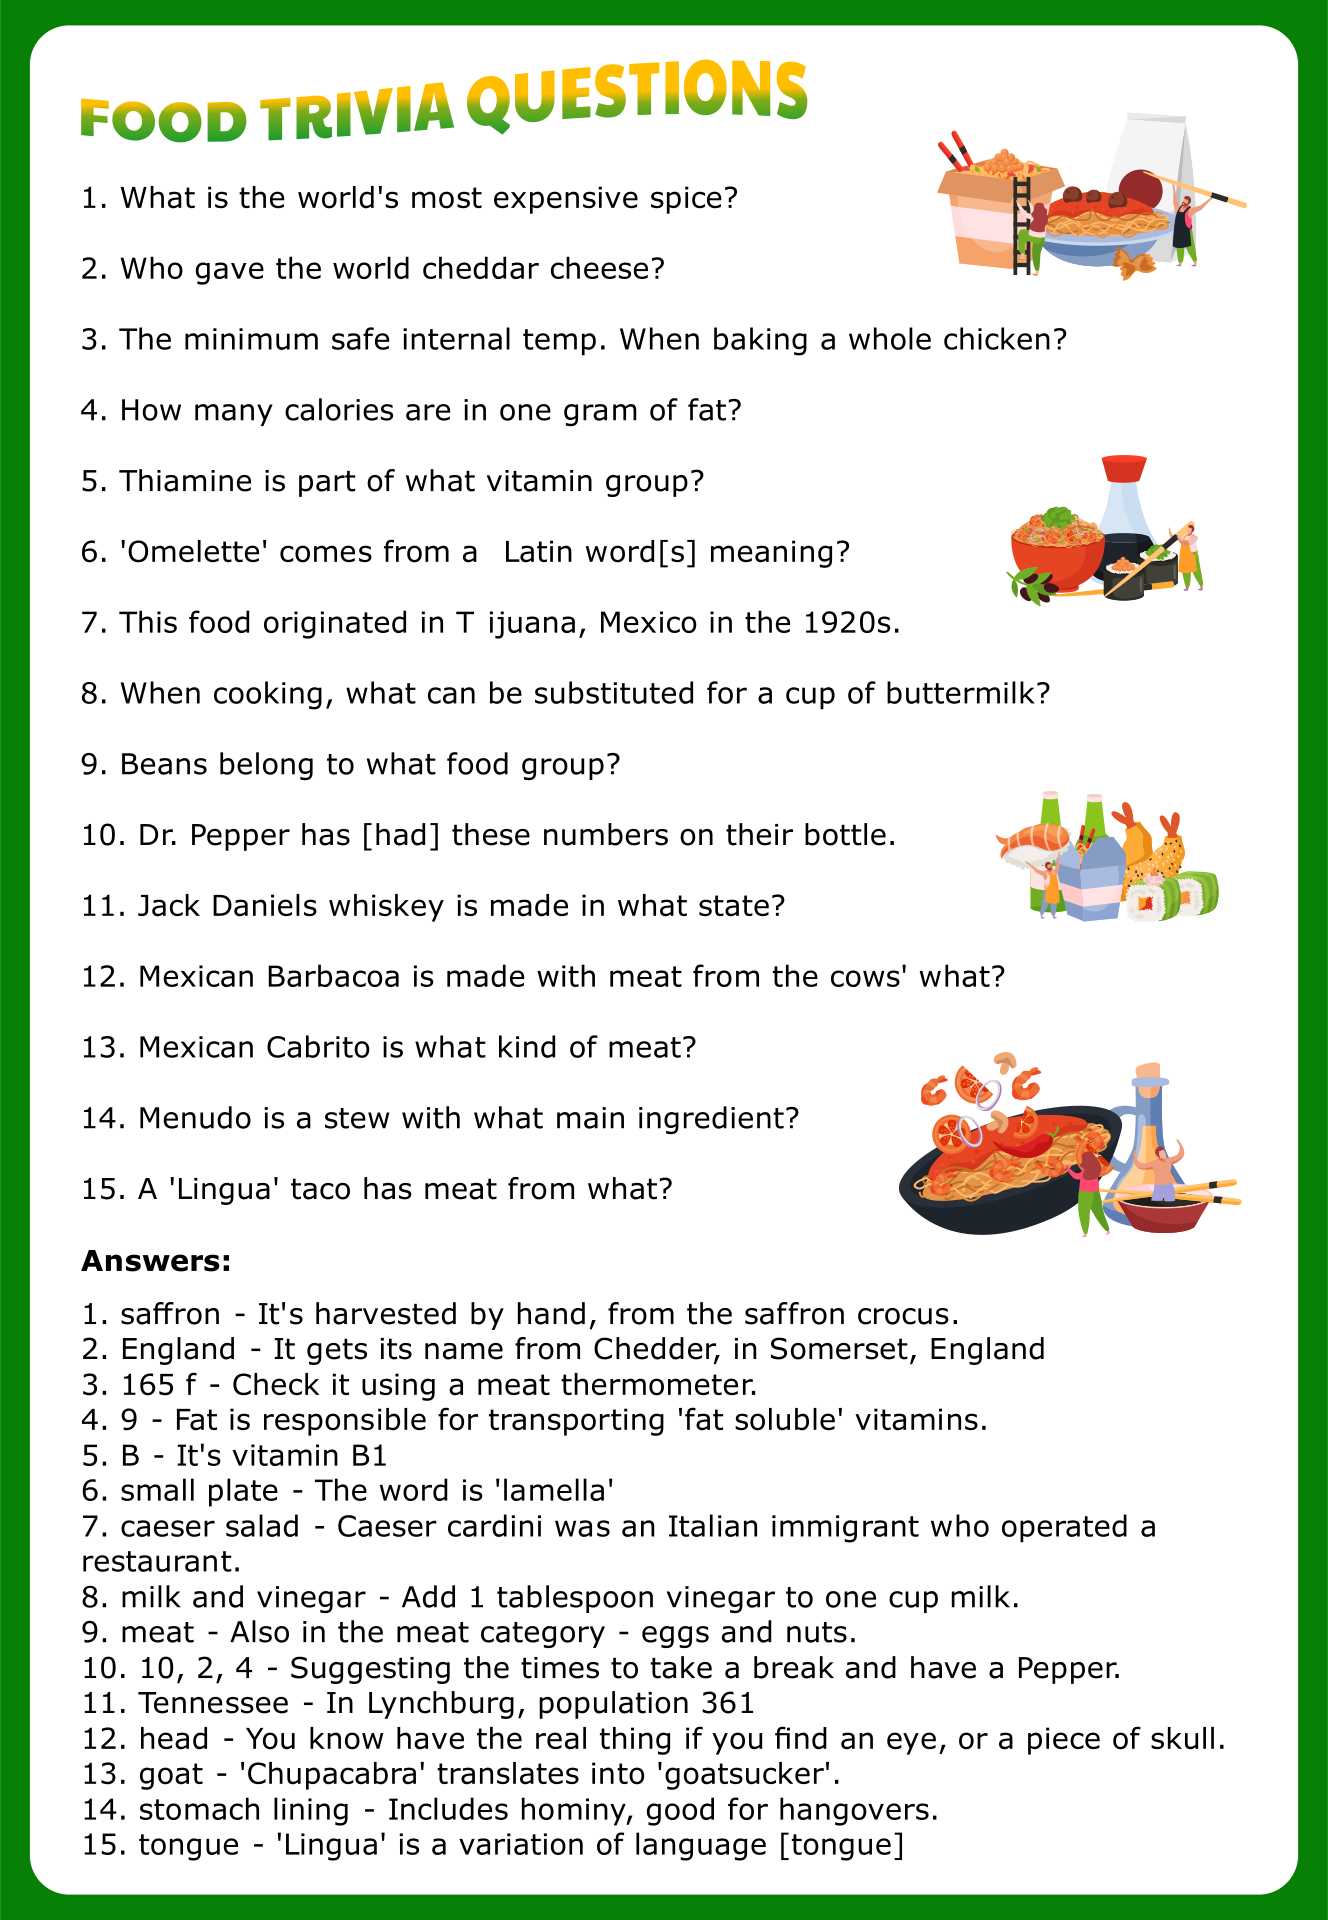 This is a picture of Old Fashioned Food Trivia Questions and Answers Printable